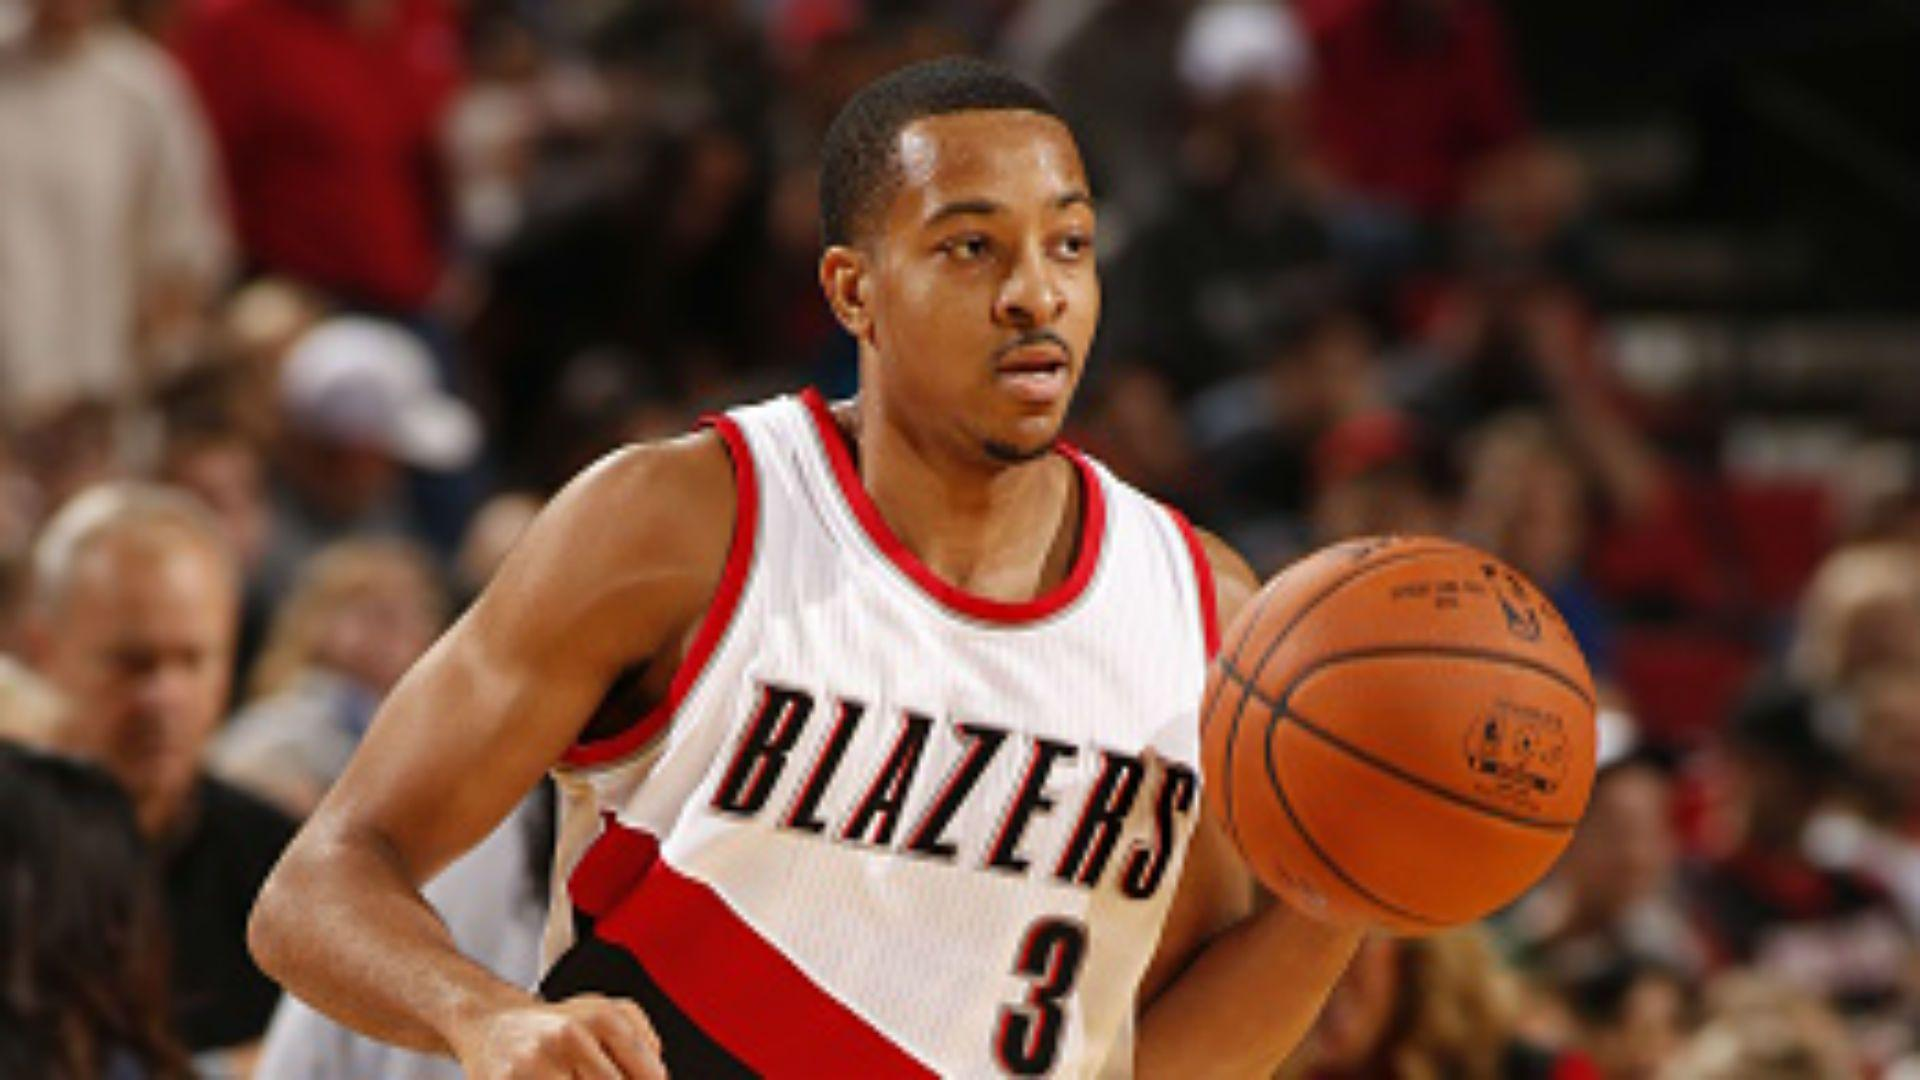 Blazers guard C.J. McCollum turns into Stephen Curry to start